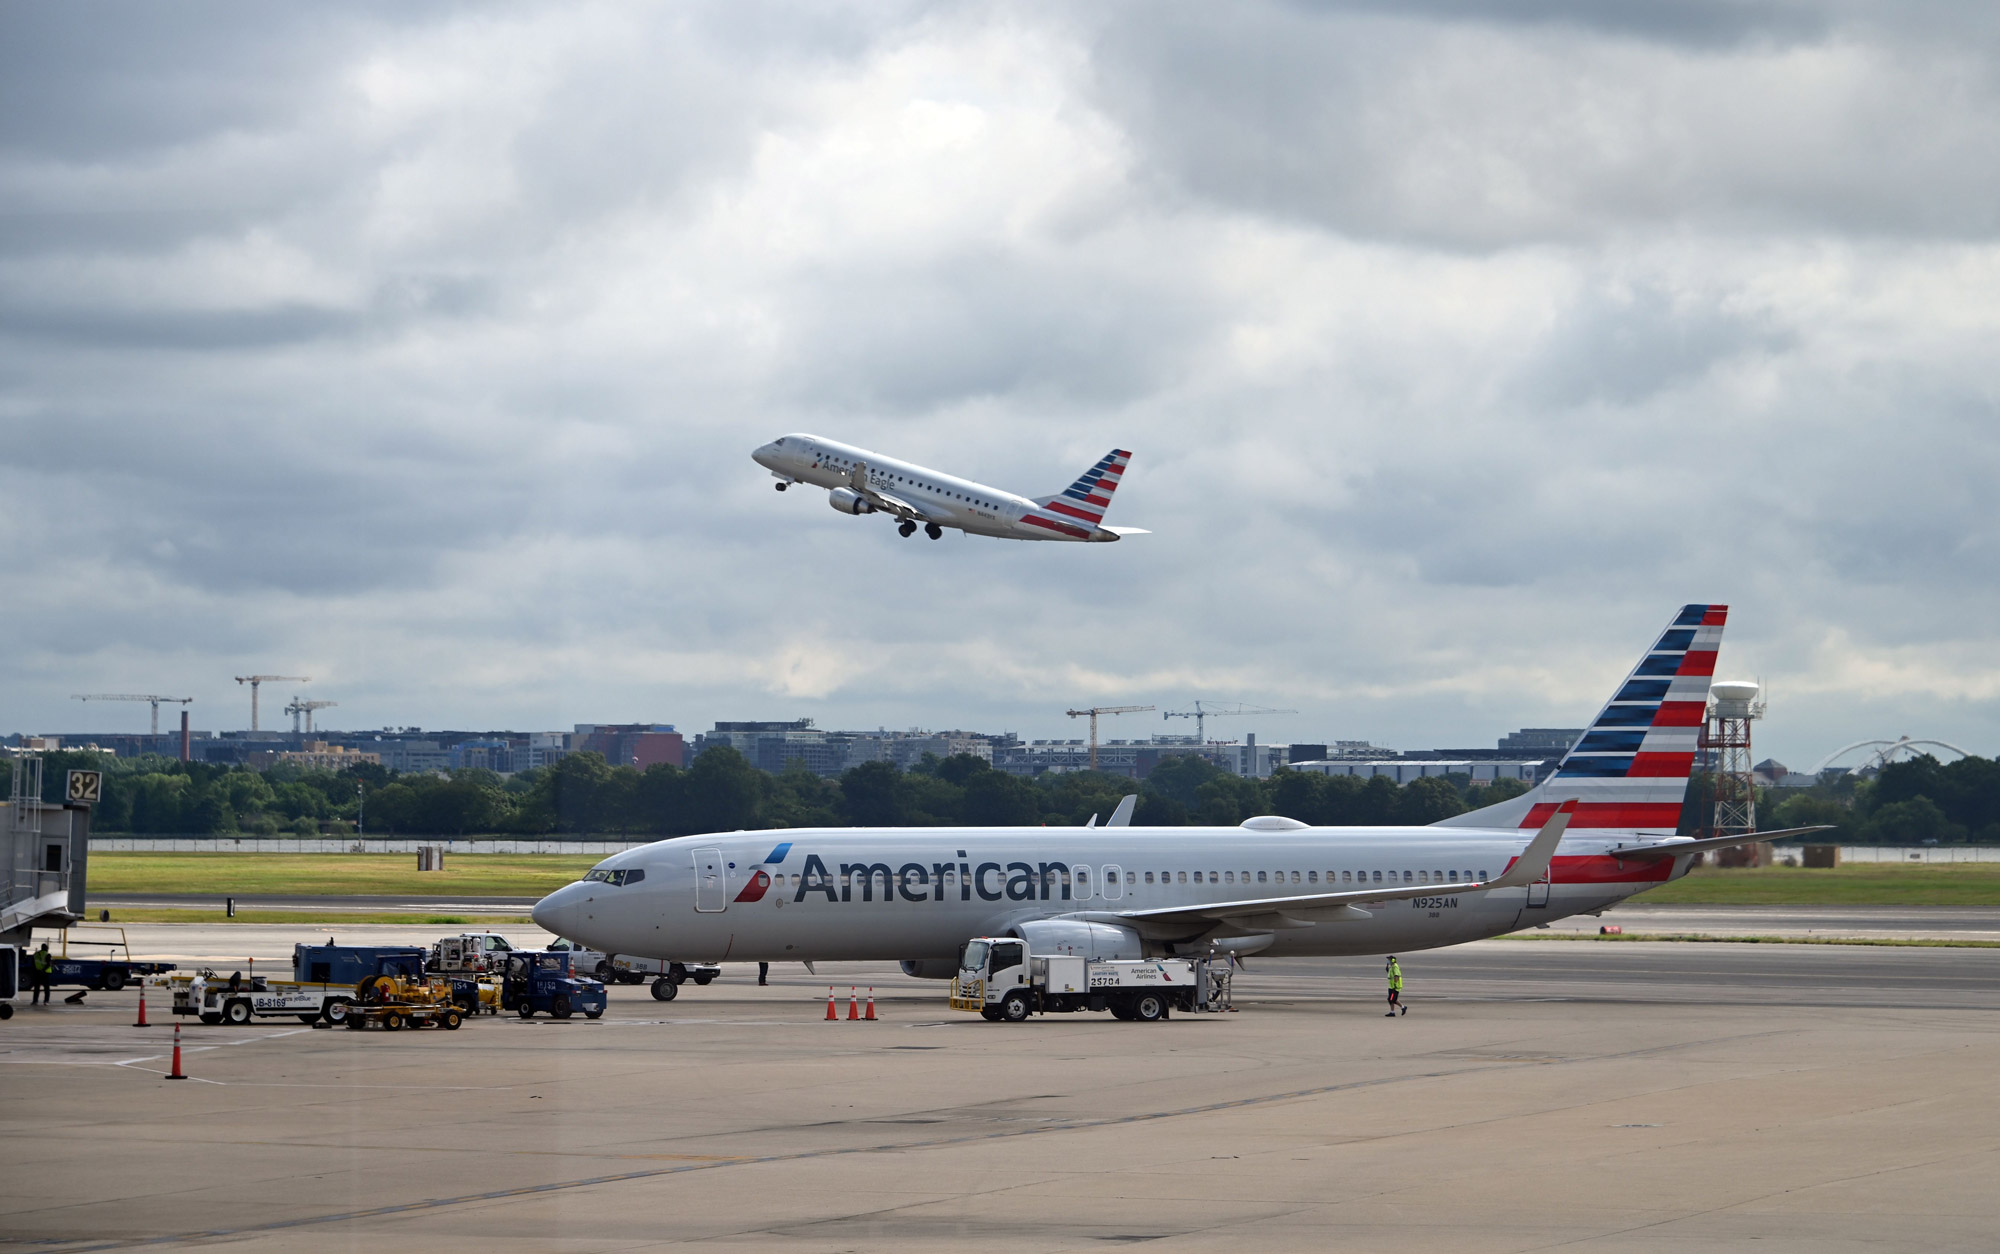 An American Airlines plane approaches a gate at Ronald Reagan Washington National Airport on July 10 in Arlington, Virginia.